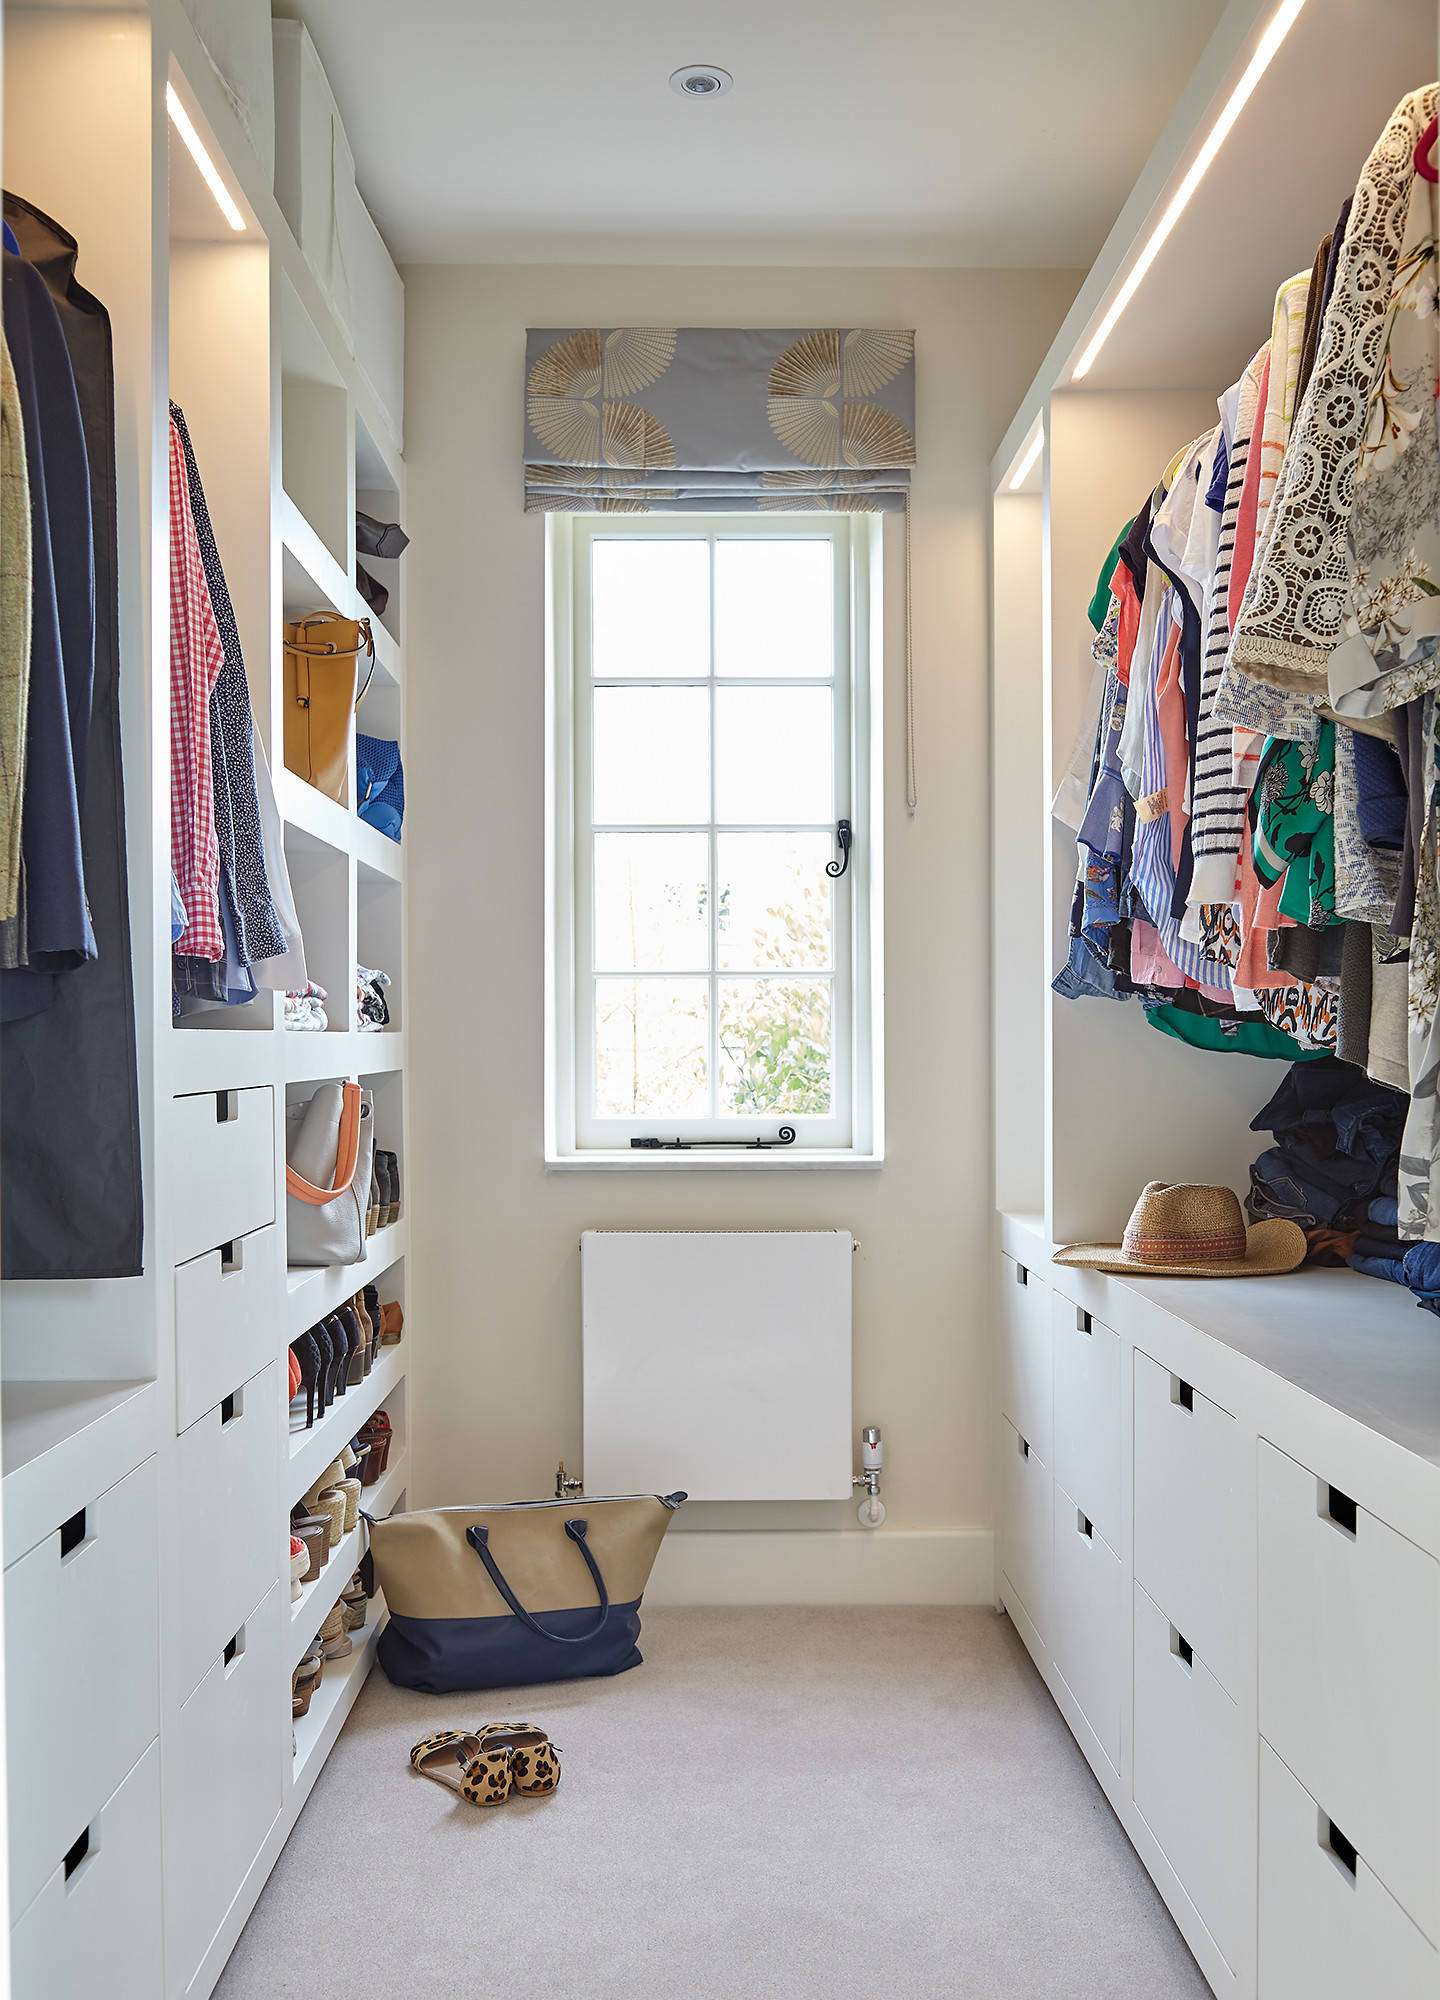 Image of: 75 Beautiful Walk In Closet Pictures Ideas November 2020 Houzz